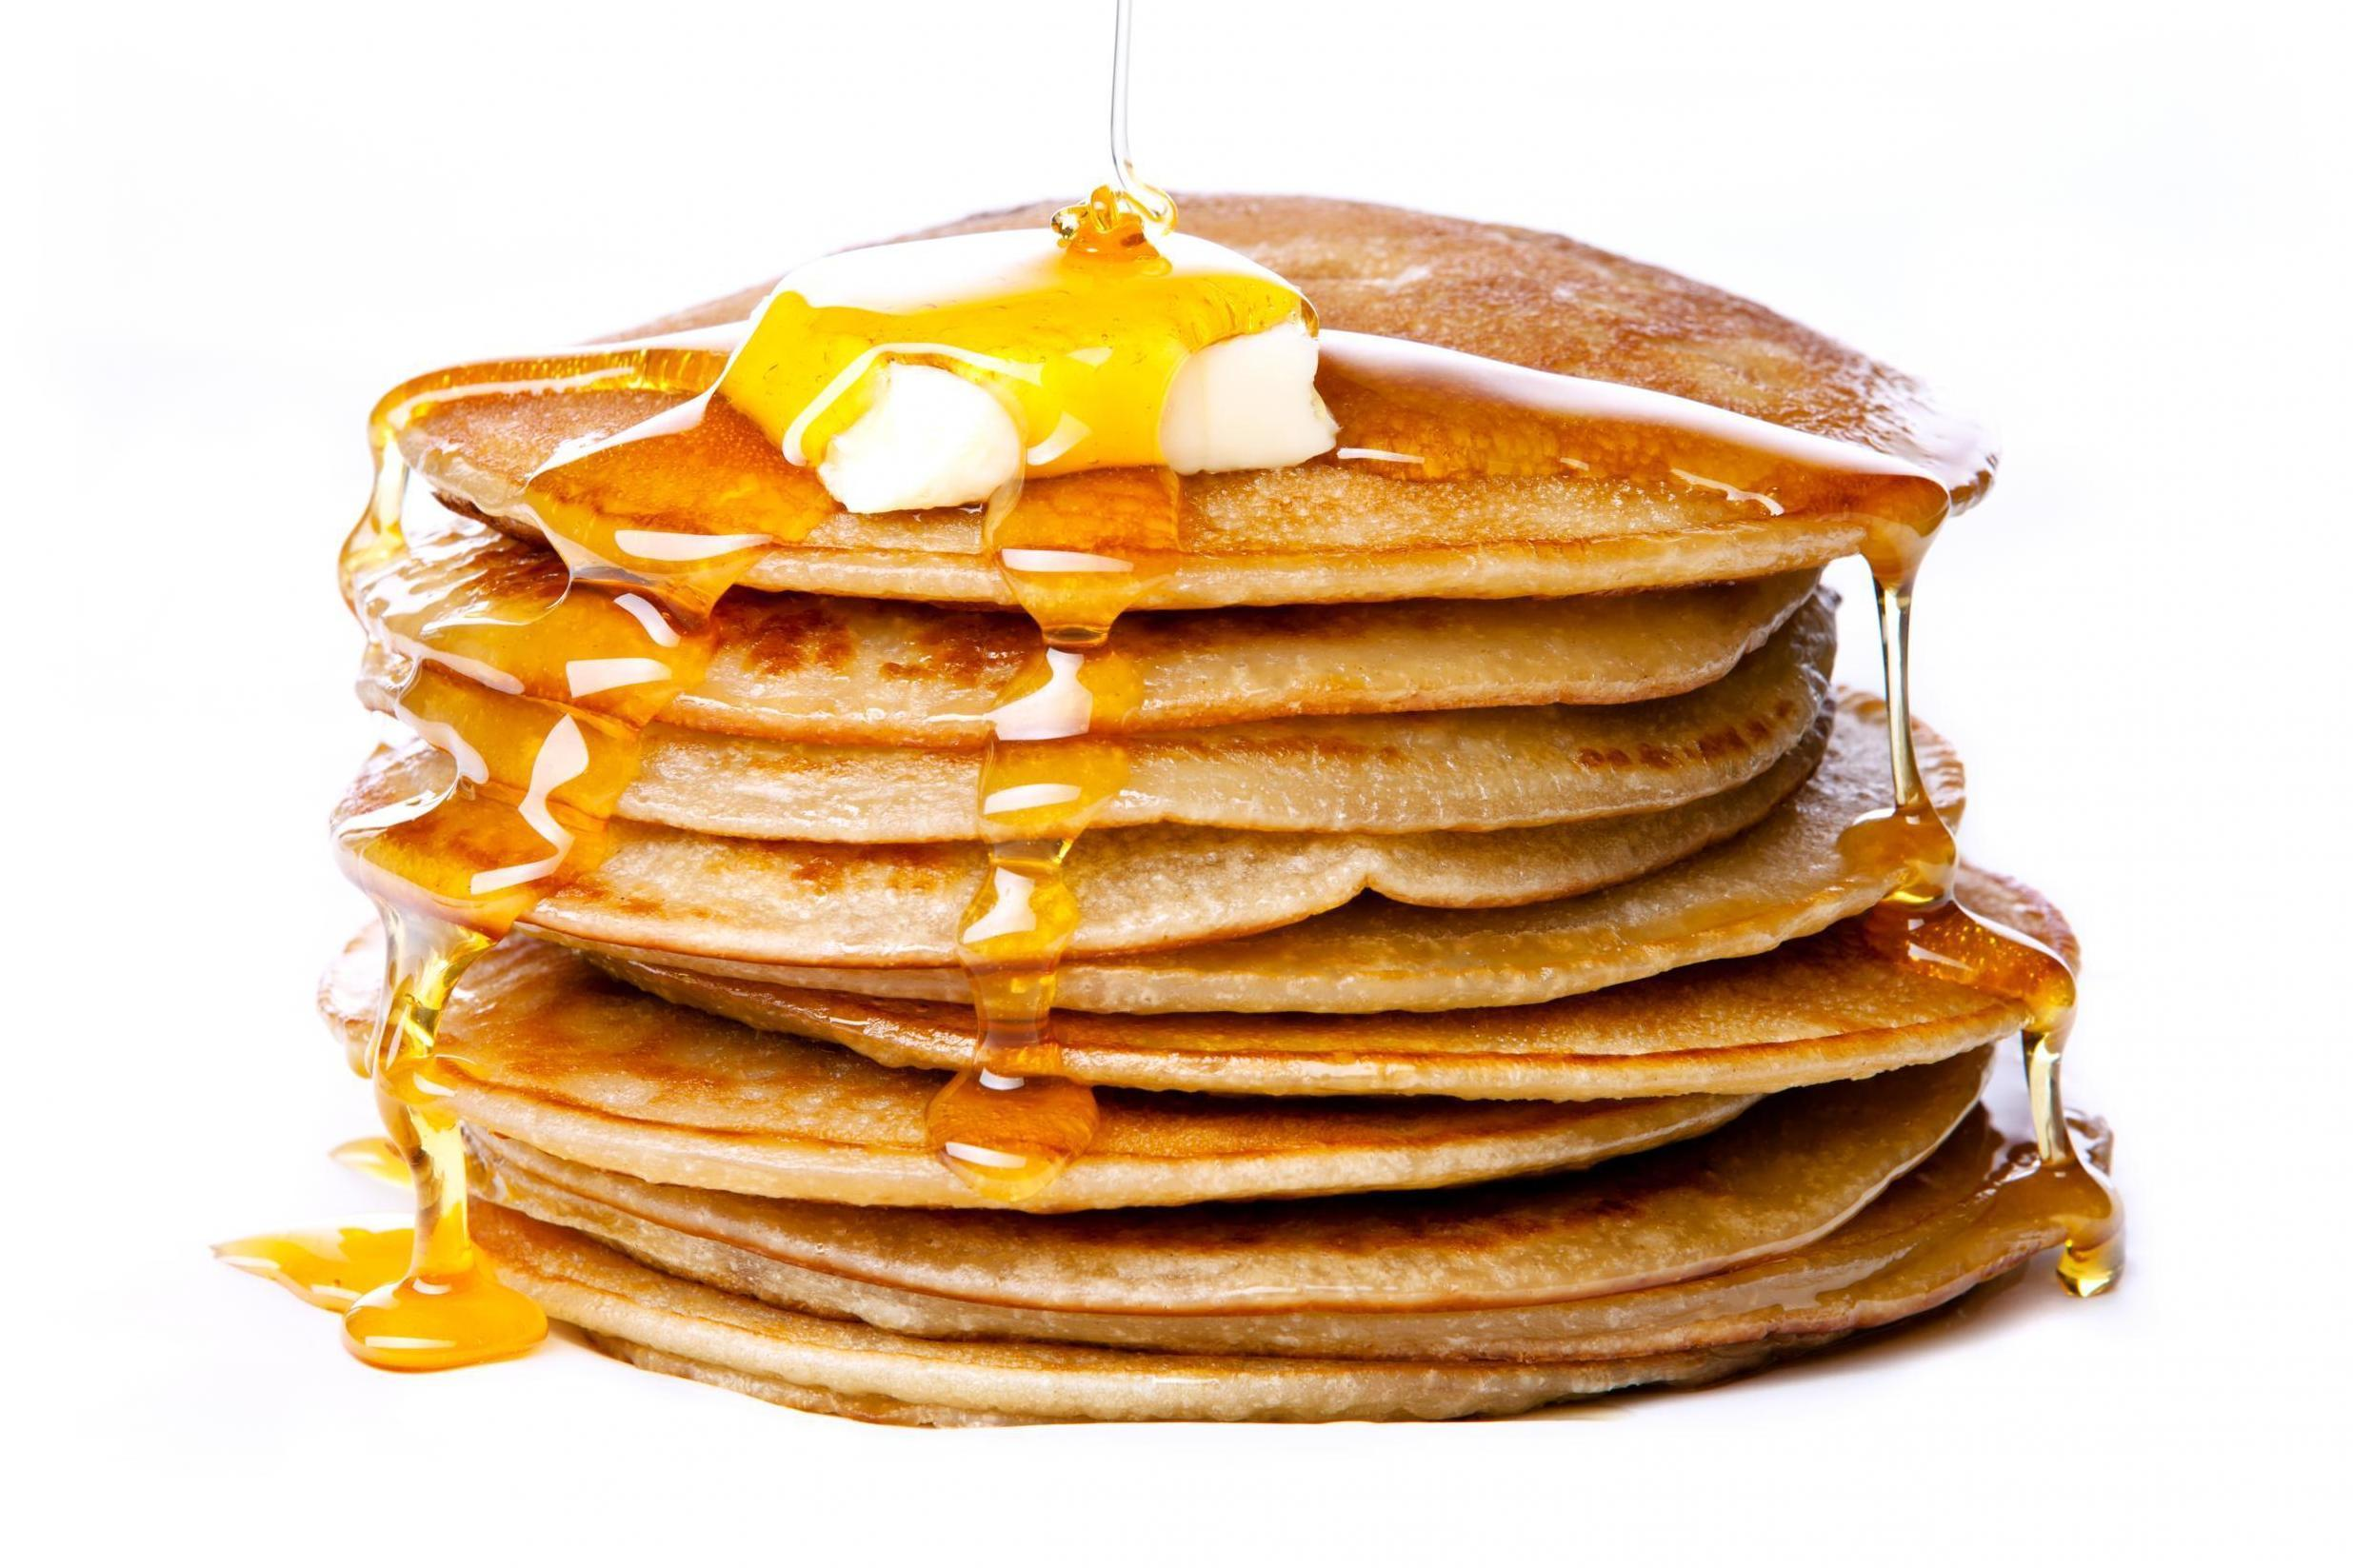 IHOP National Pancake Day: How to get your free stack of pancakes | The Independentindependent_brand_ident_LOGOUntitled